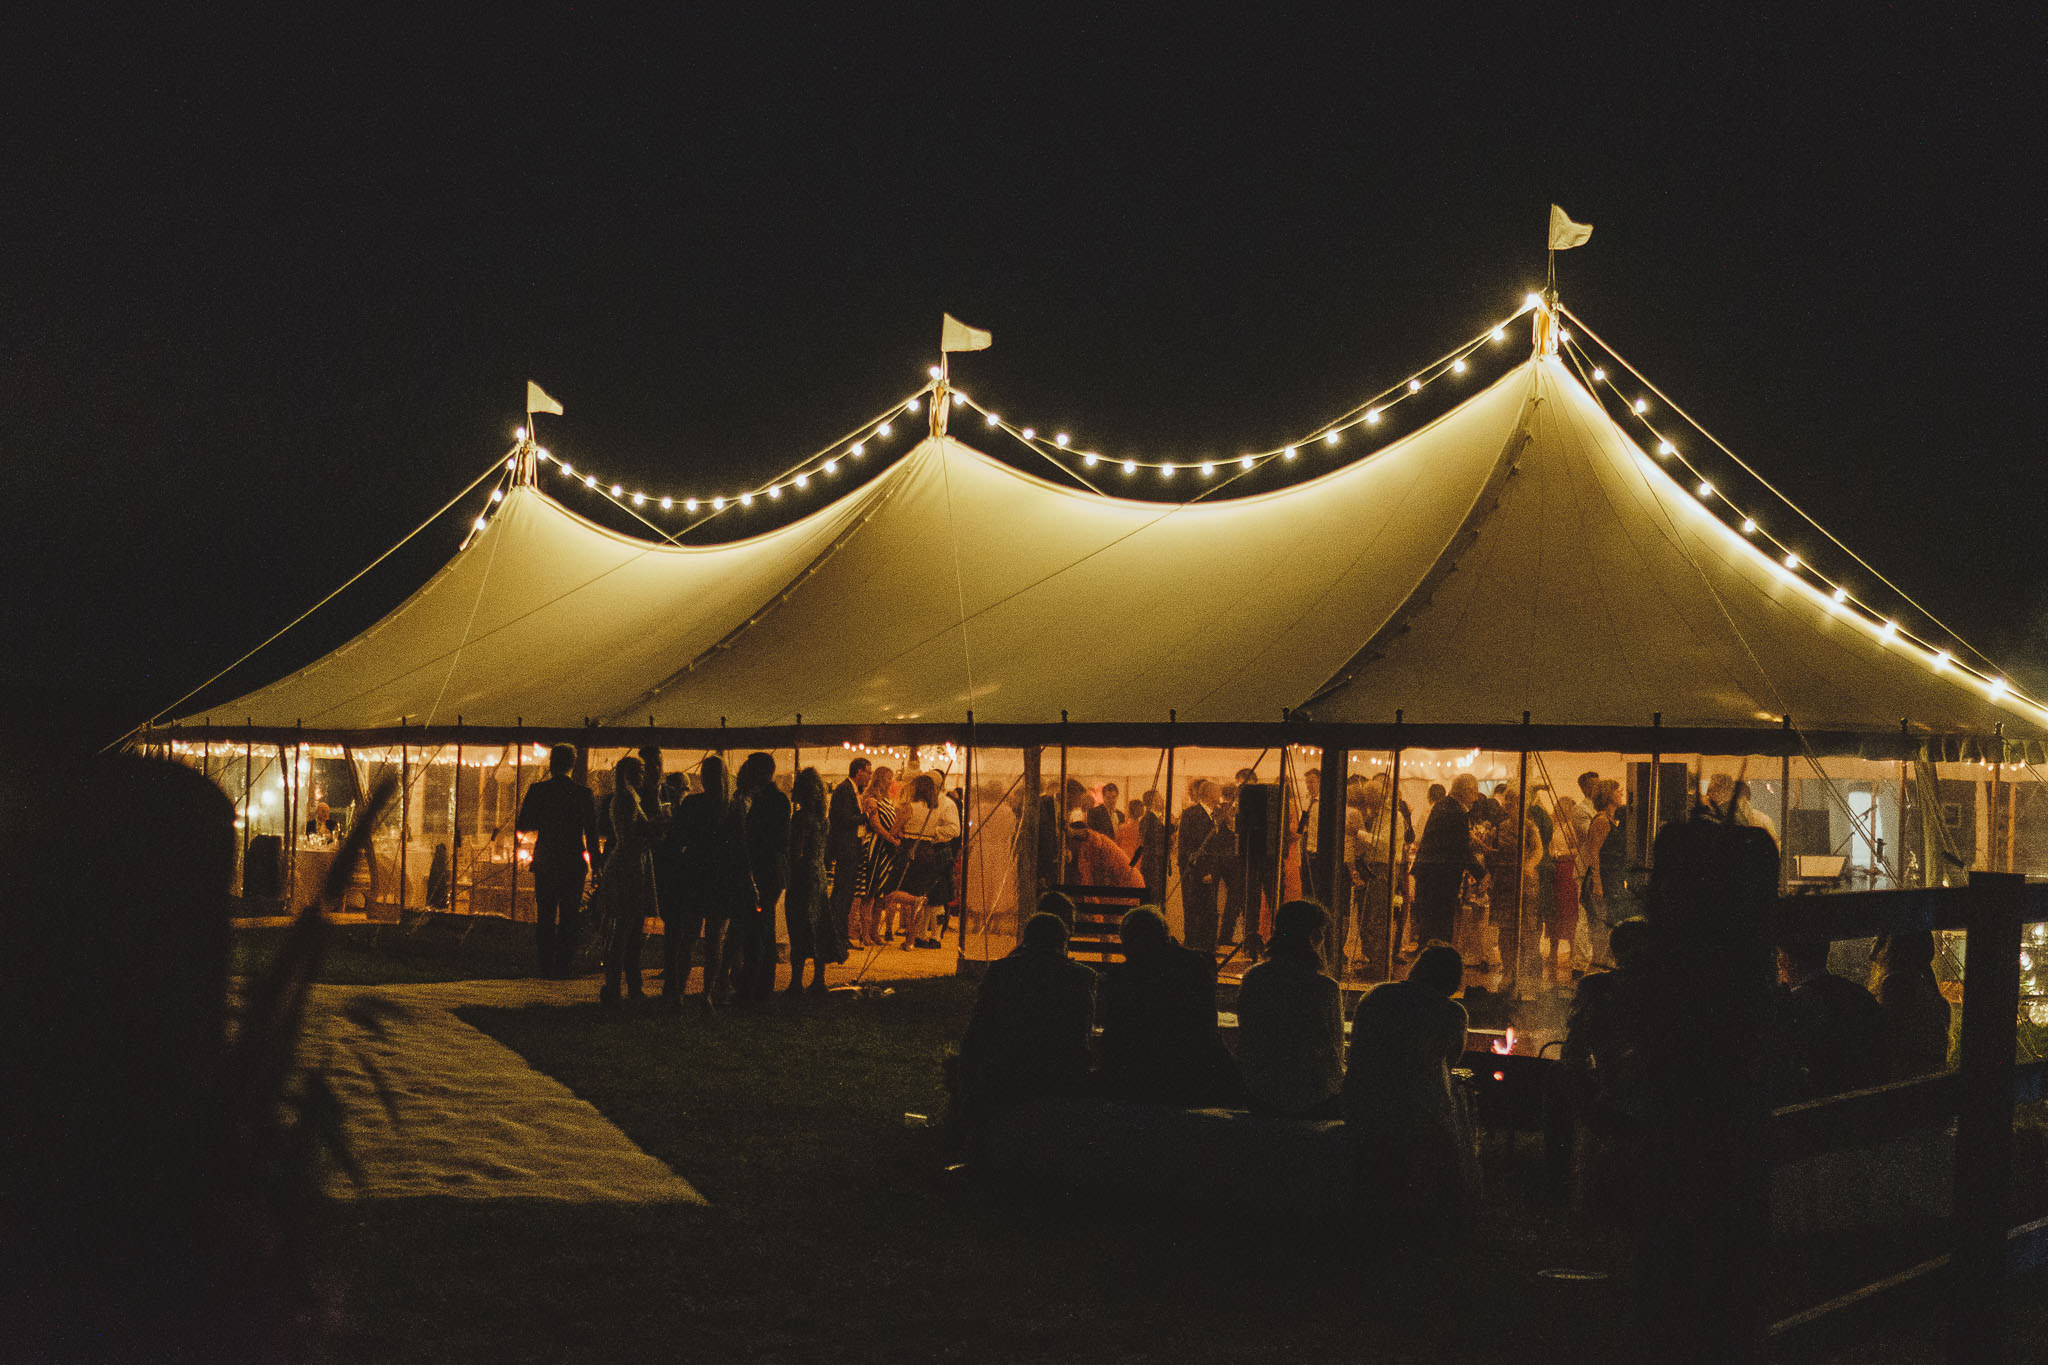 The marquee lit up at night on Oxbank Farm, Yorkshire